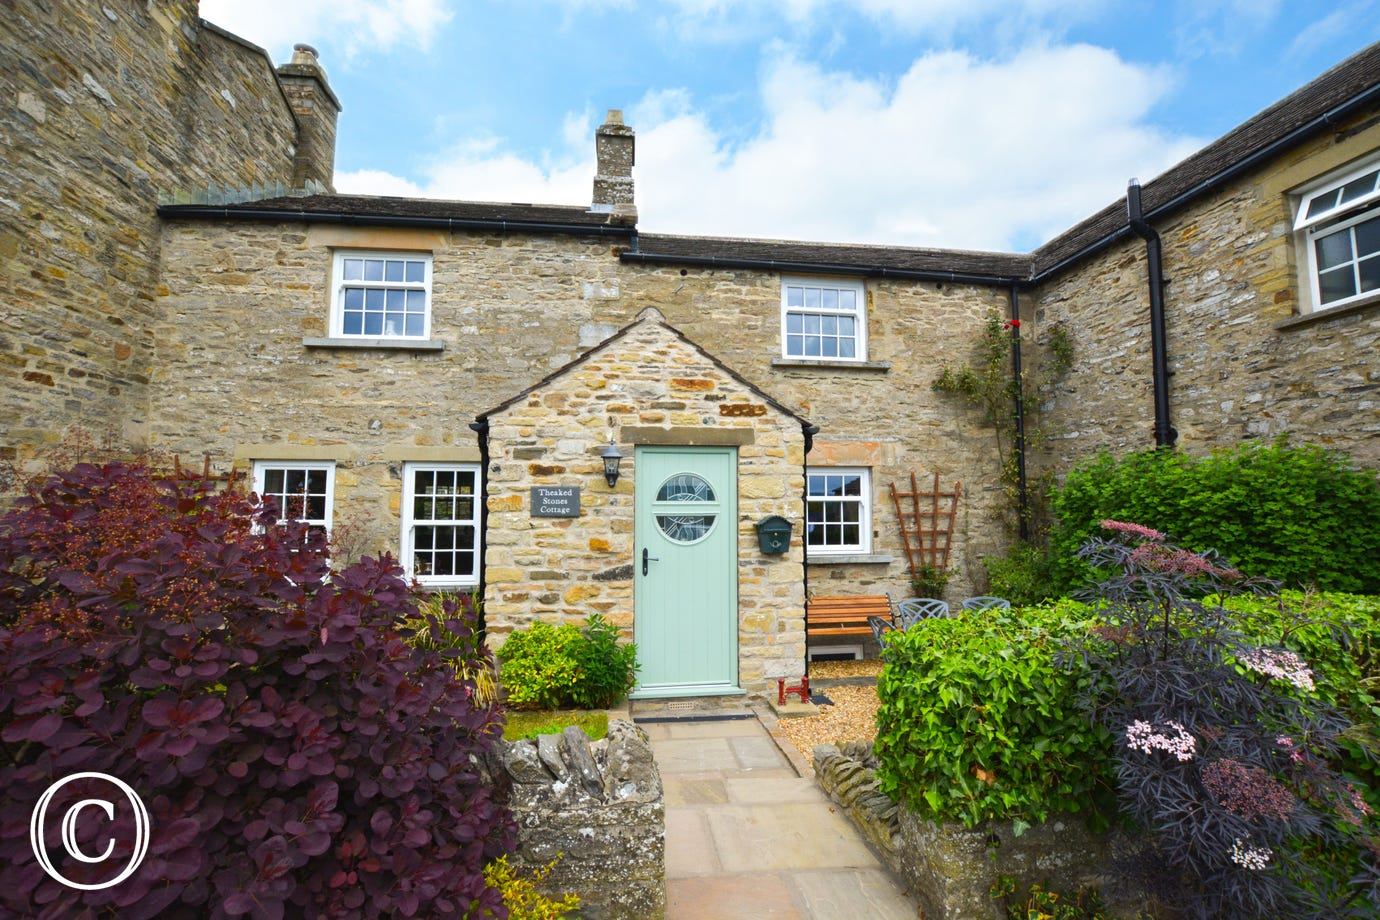 exterior stone house on ends blogs workanyware co uk u2022 rh blogs workanyware co uk